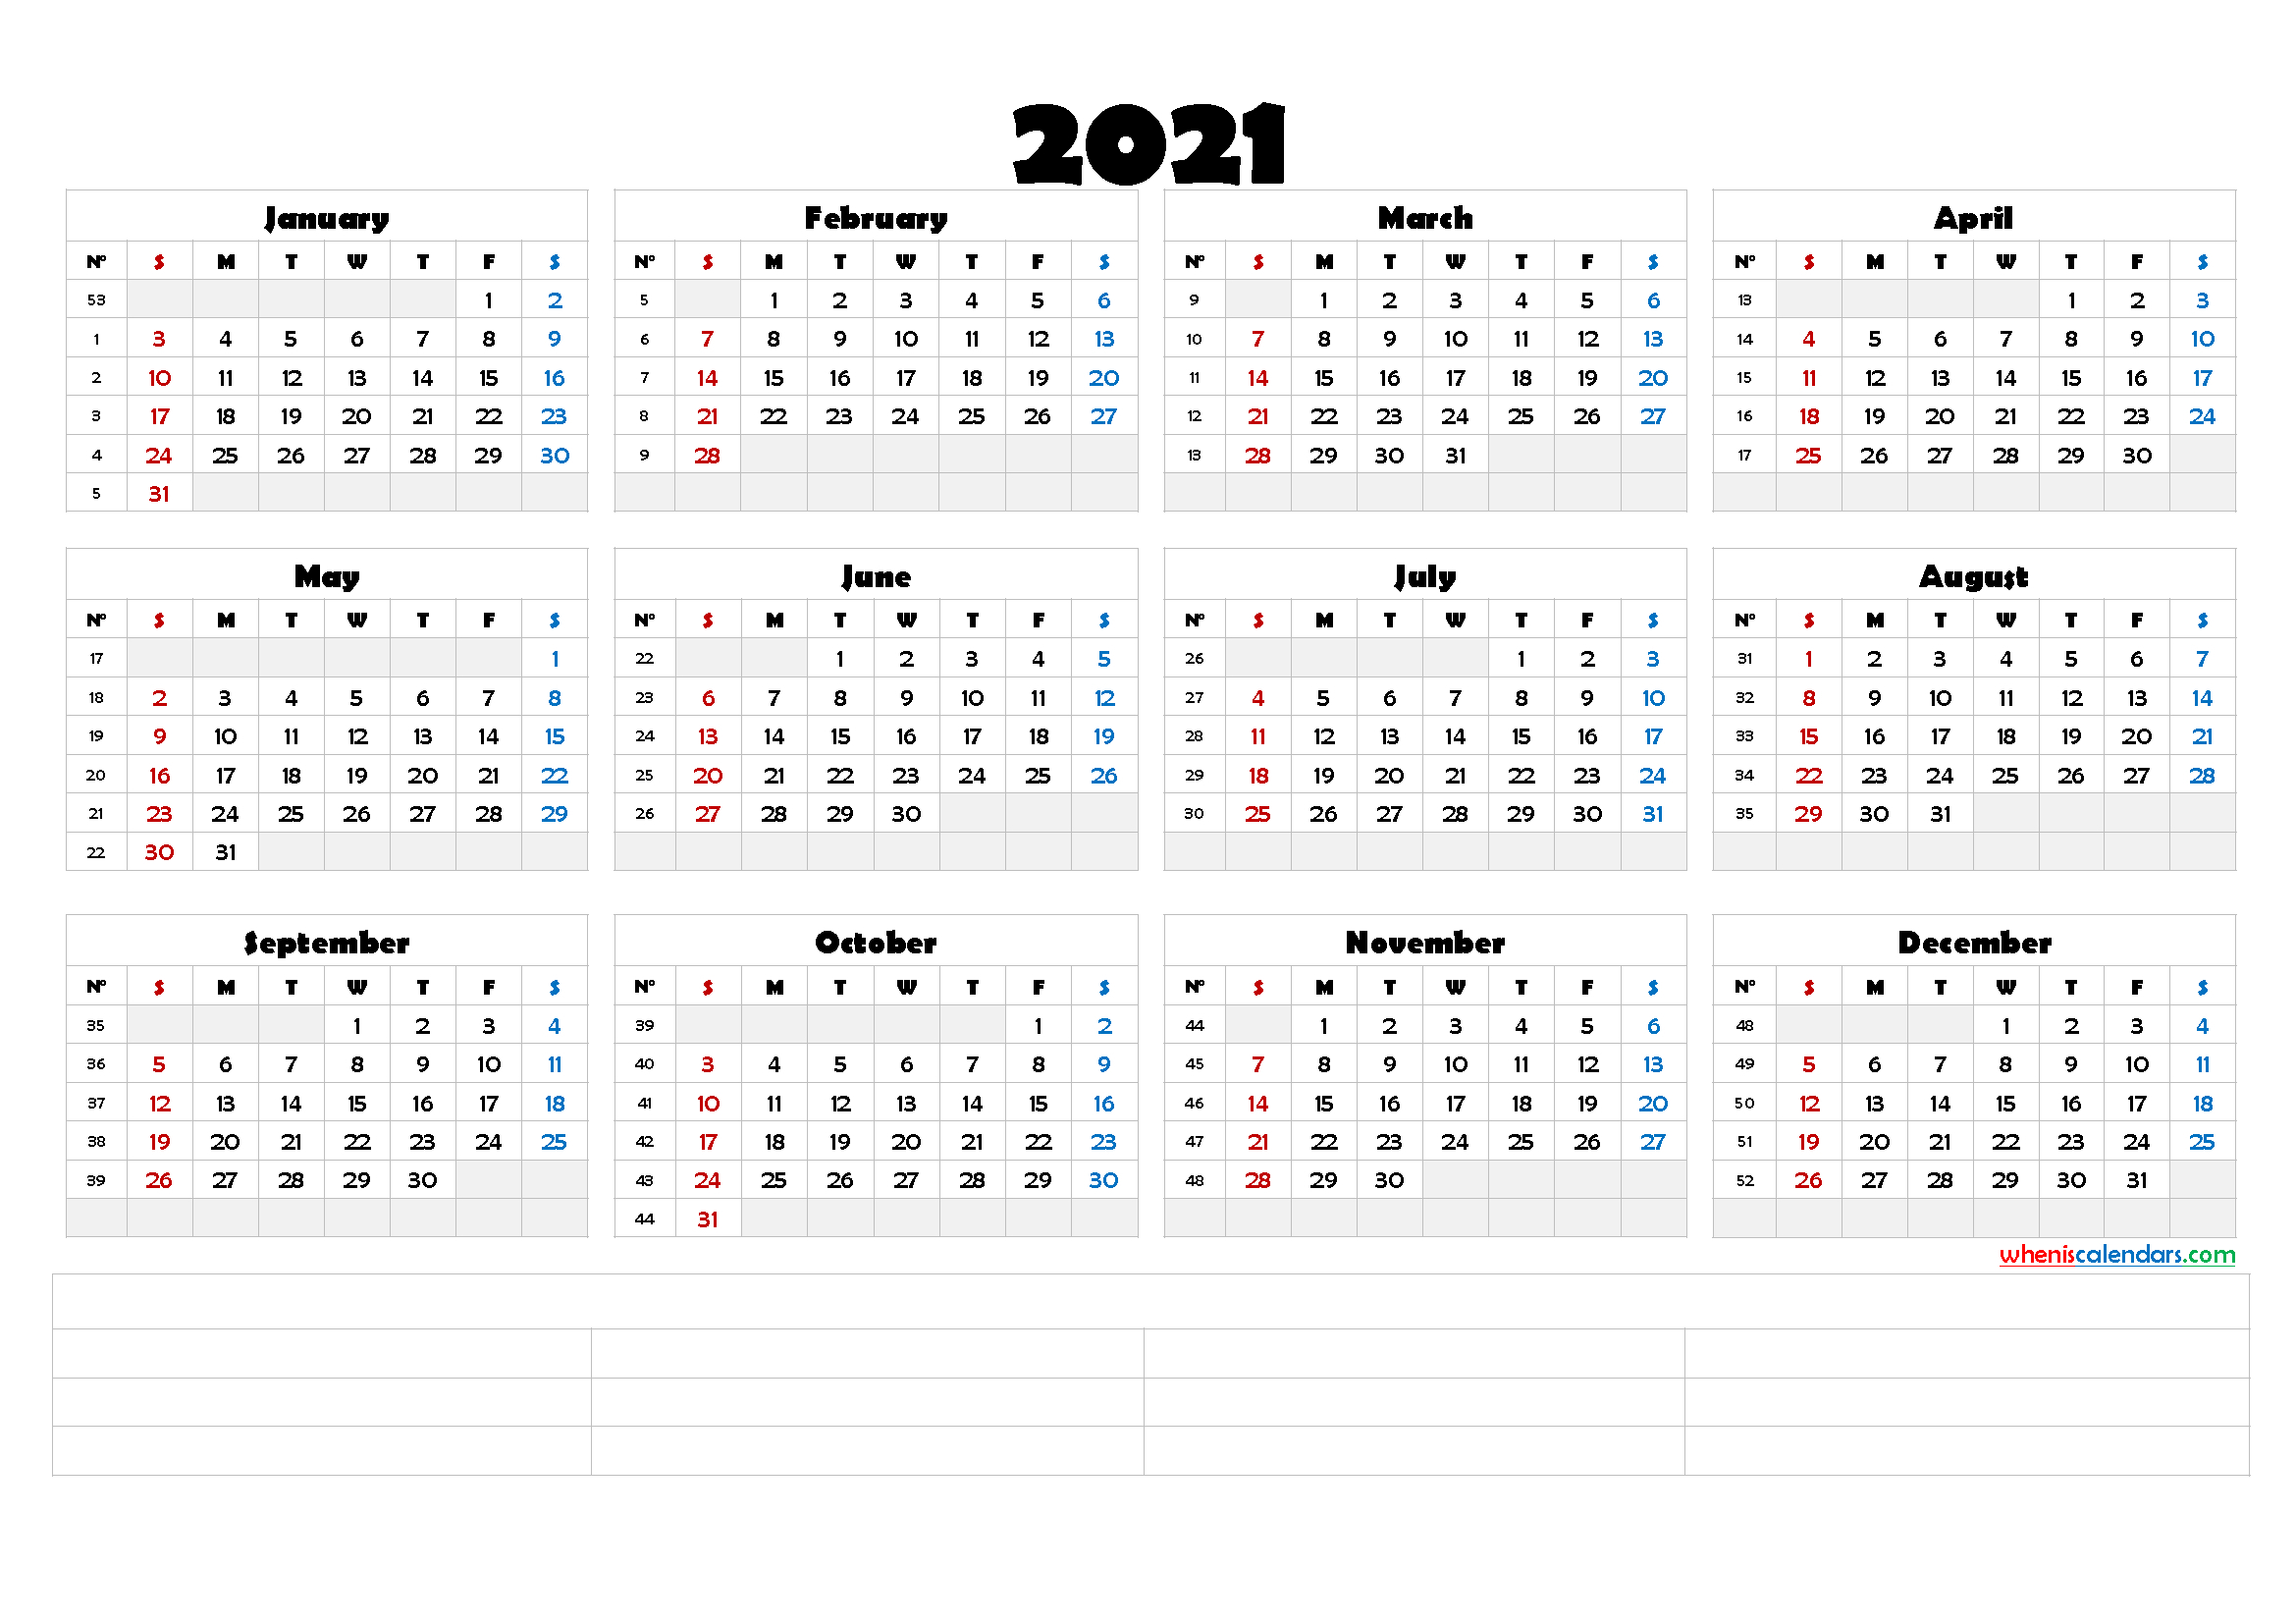 2021 Free Yearly Calendar Template Word - Calendraex